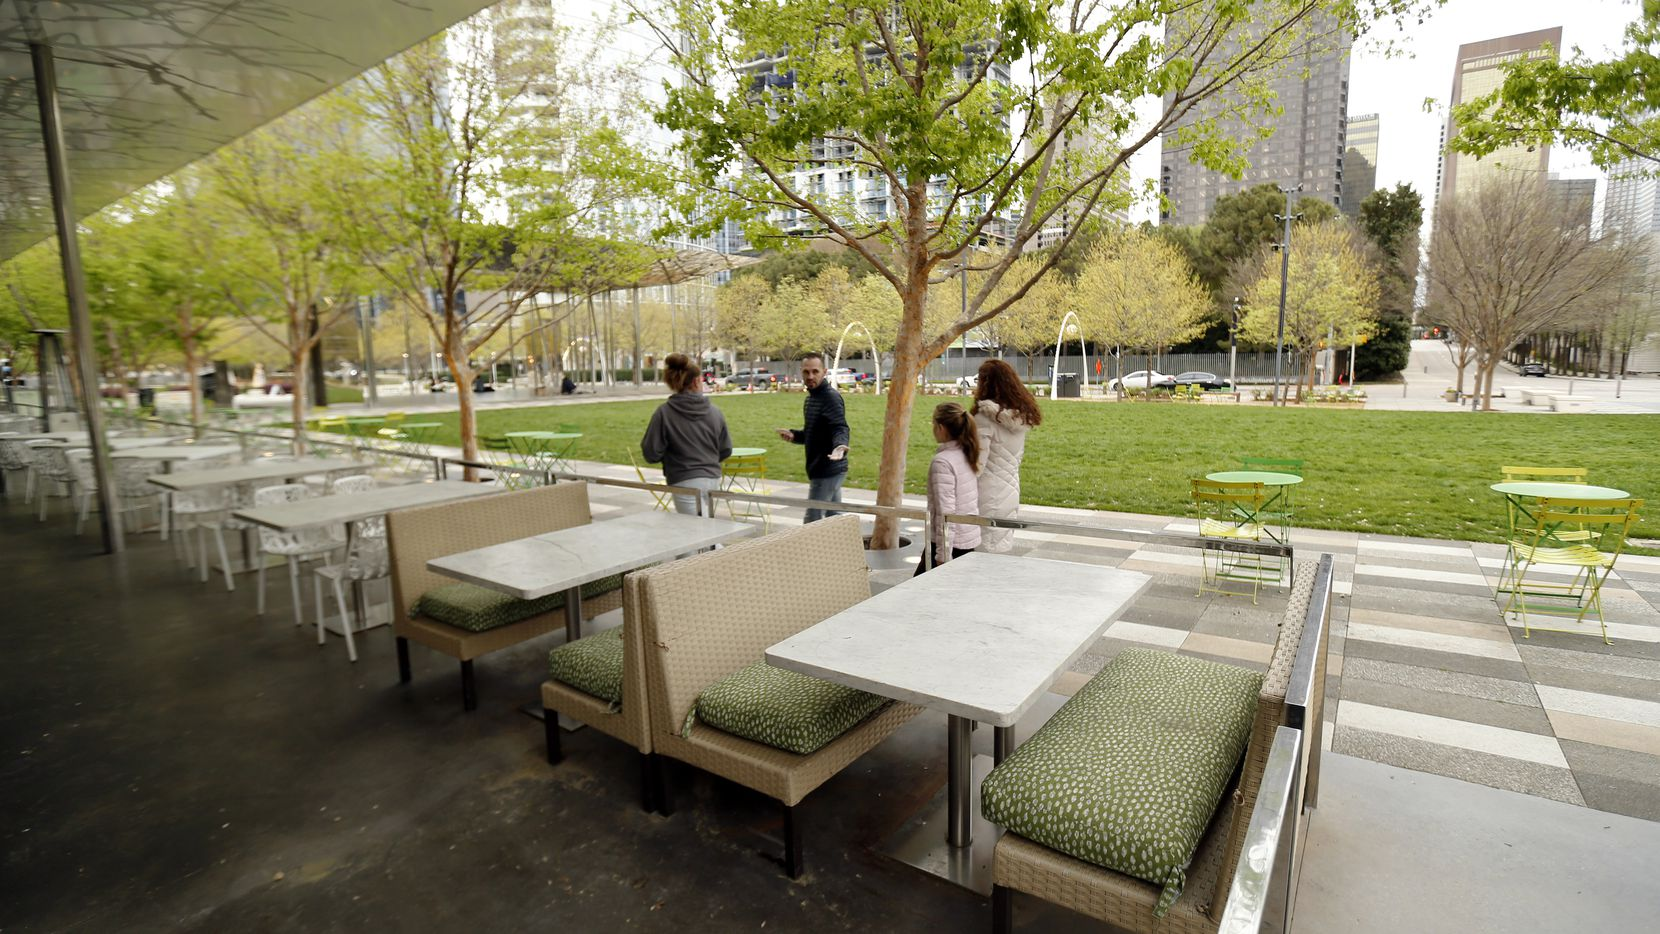 Klyde Warren Park sits in the boundaries of District 14, a wishbone-shaped district that includes sections of downtown, Oak Lawn and neighborhoods on Dallas' historic East Side.